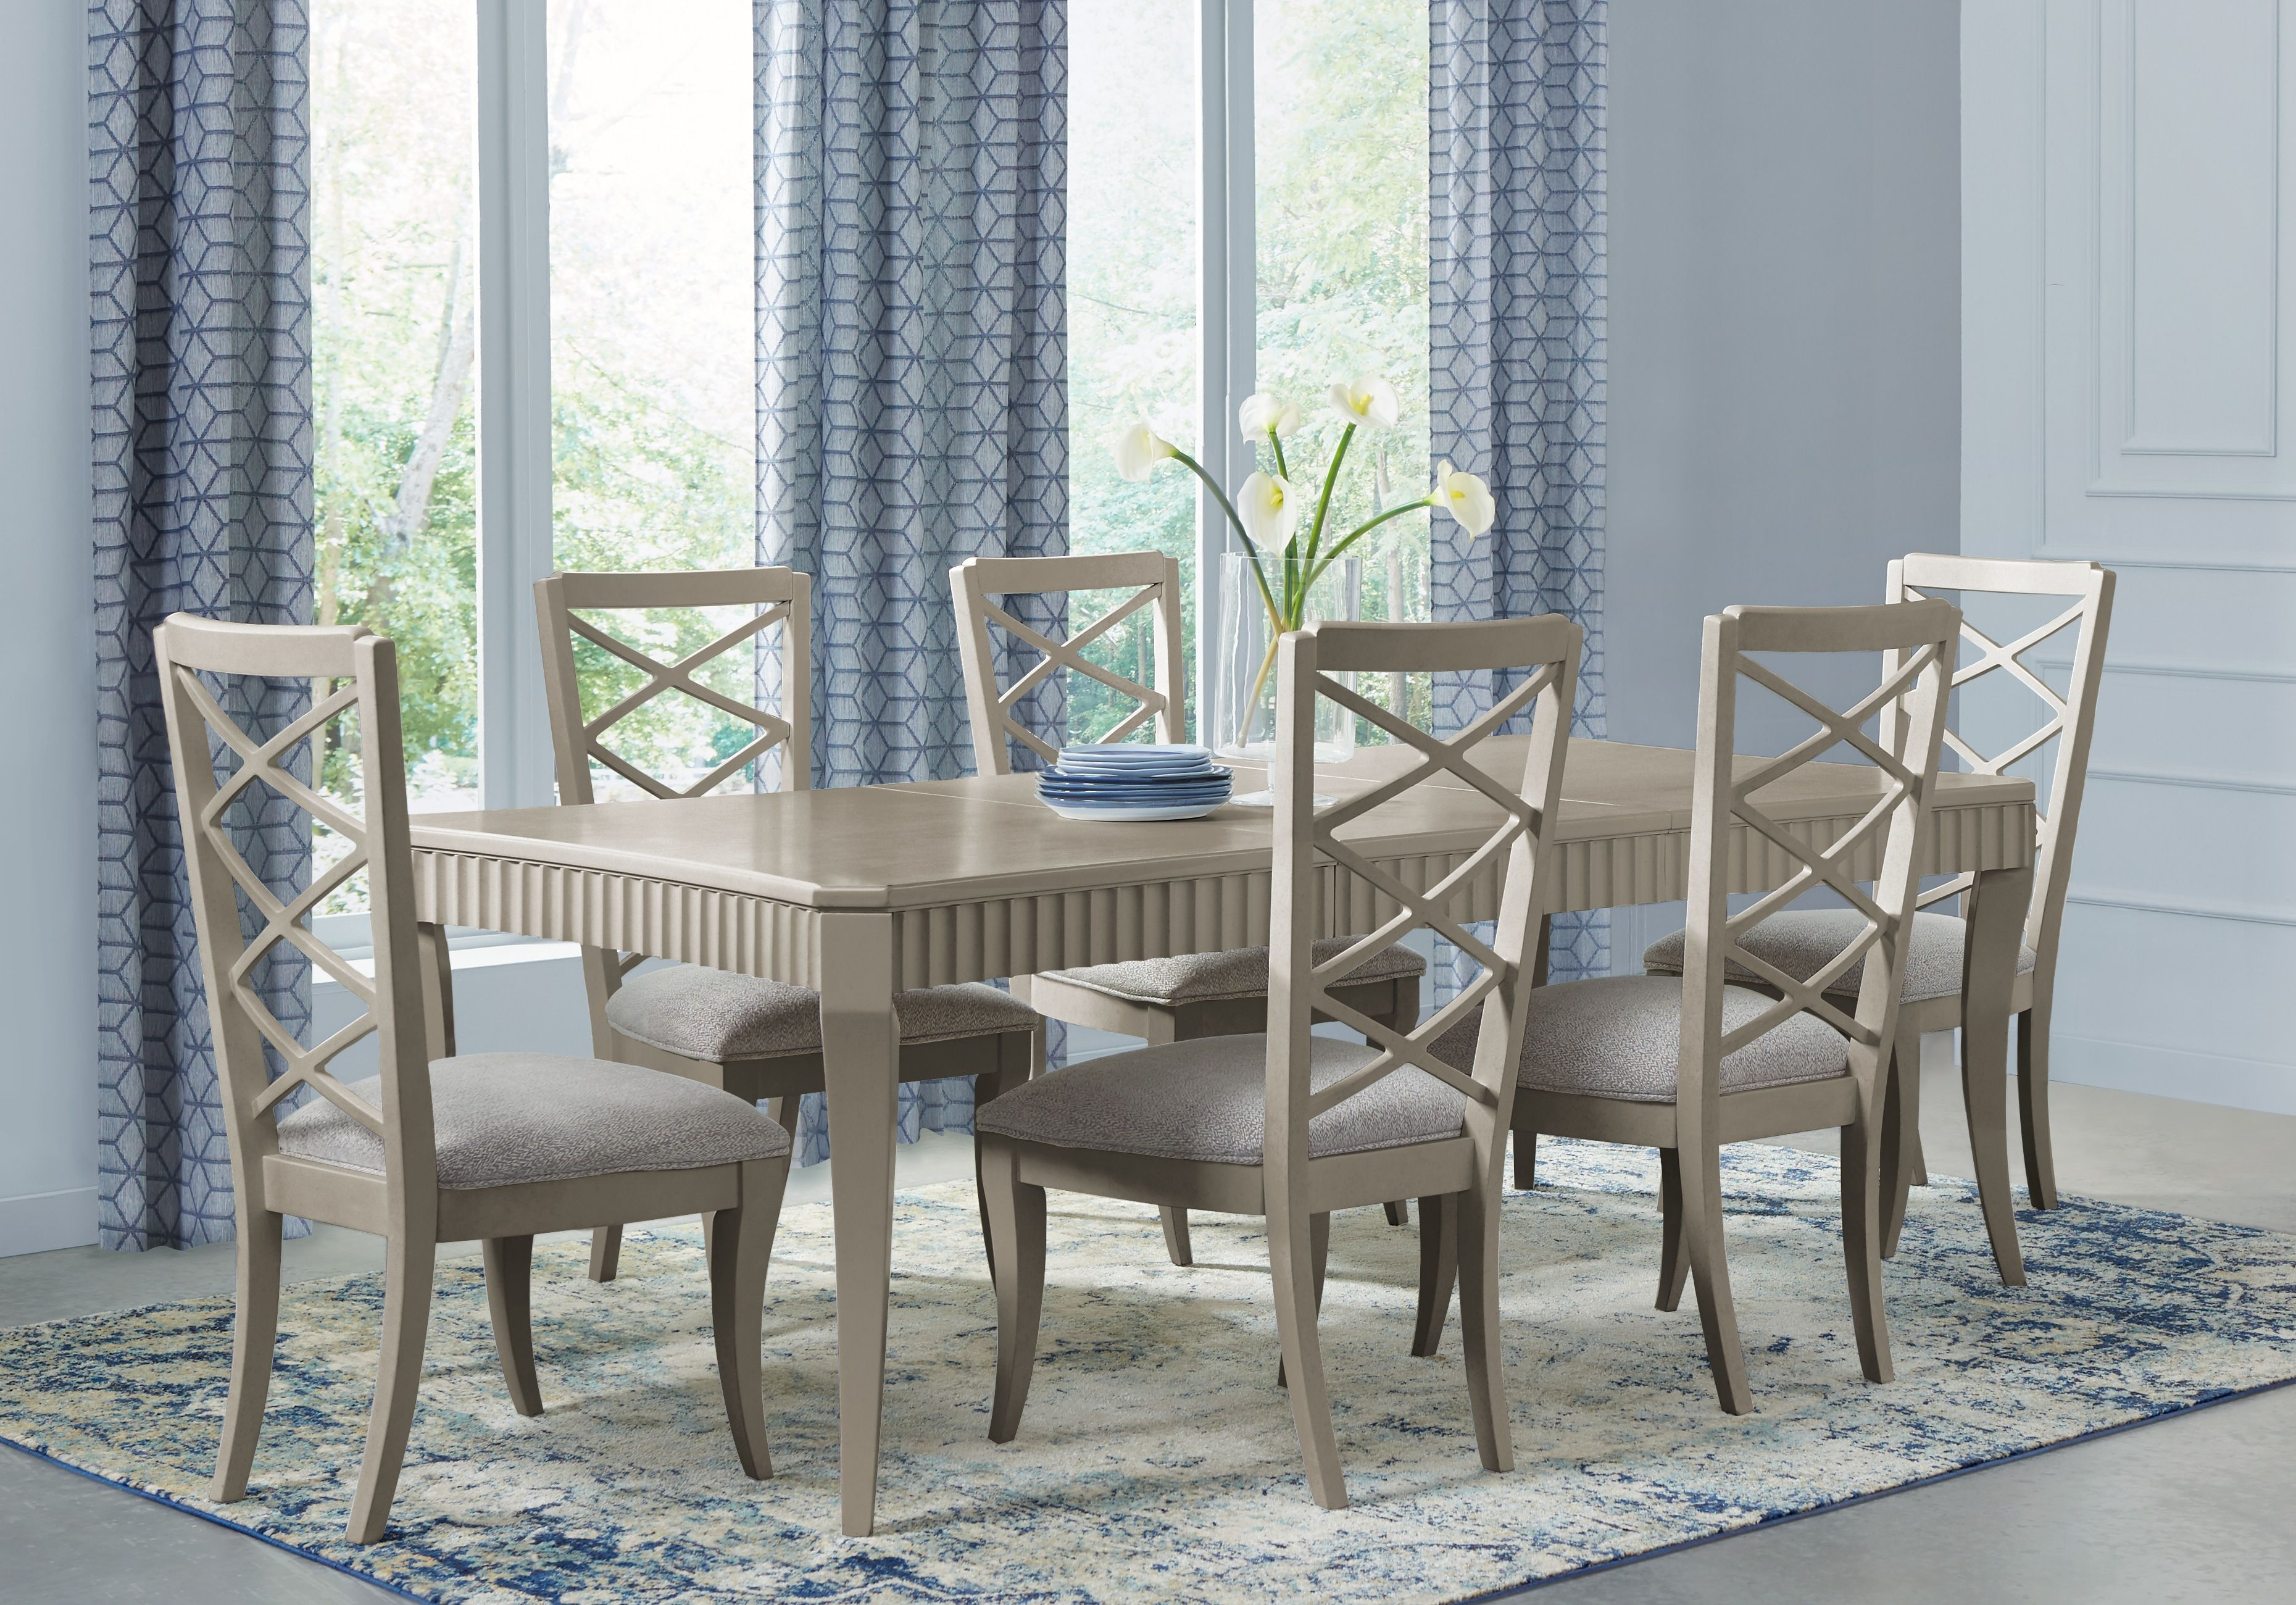 39+ Rooms to go cindy crawford dining room sets Top